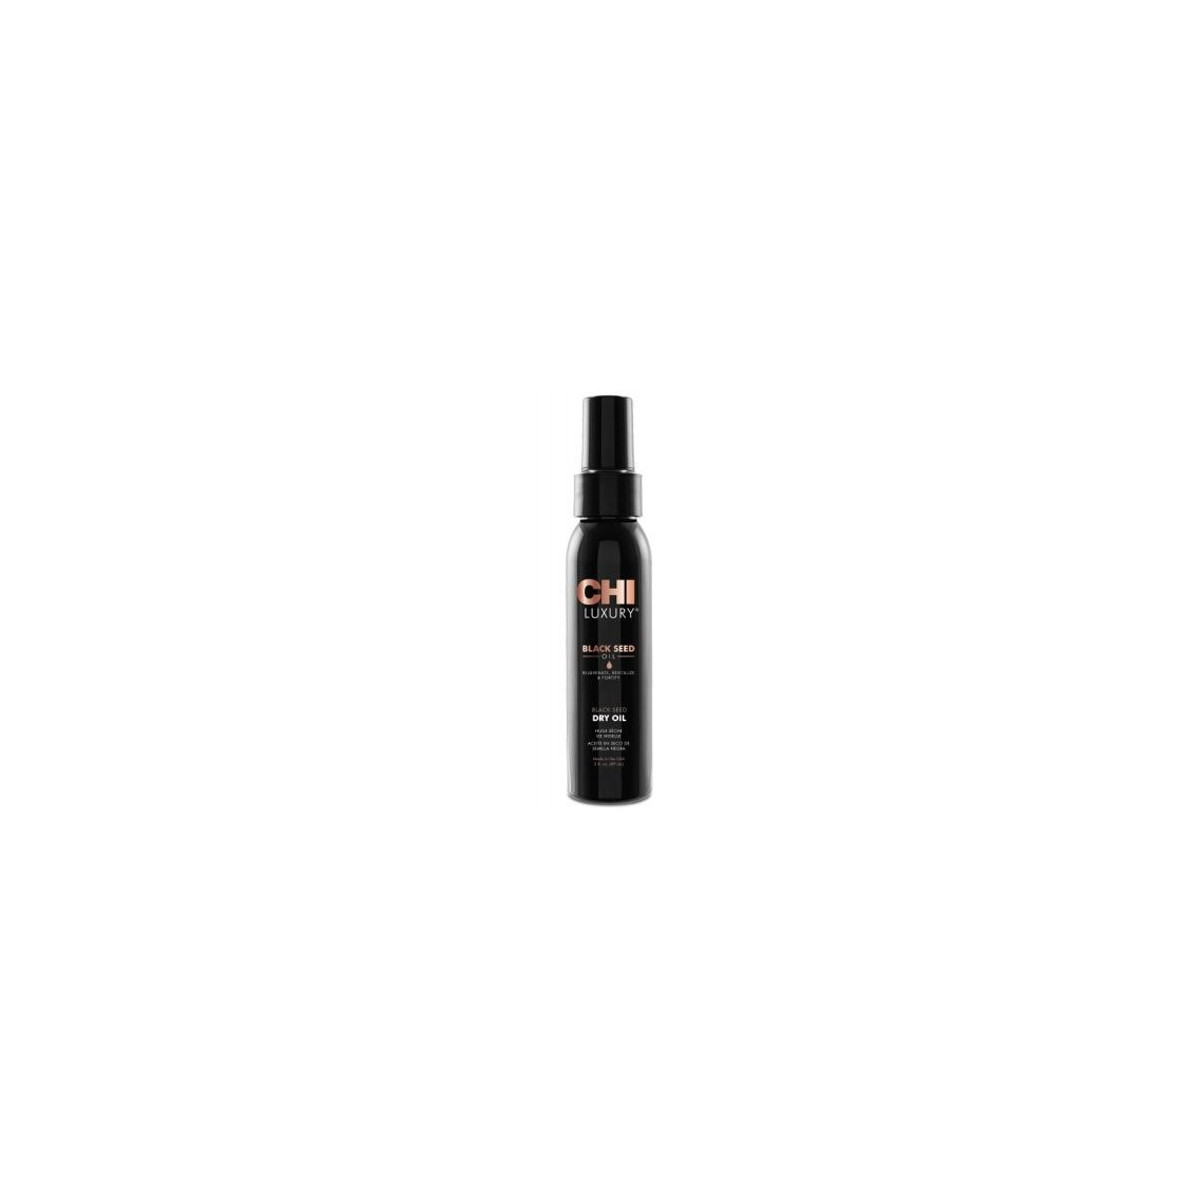 CHI Luxury Black Seed Oil, olej z czarnuszki 89ml